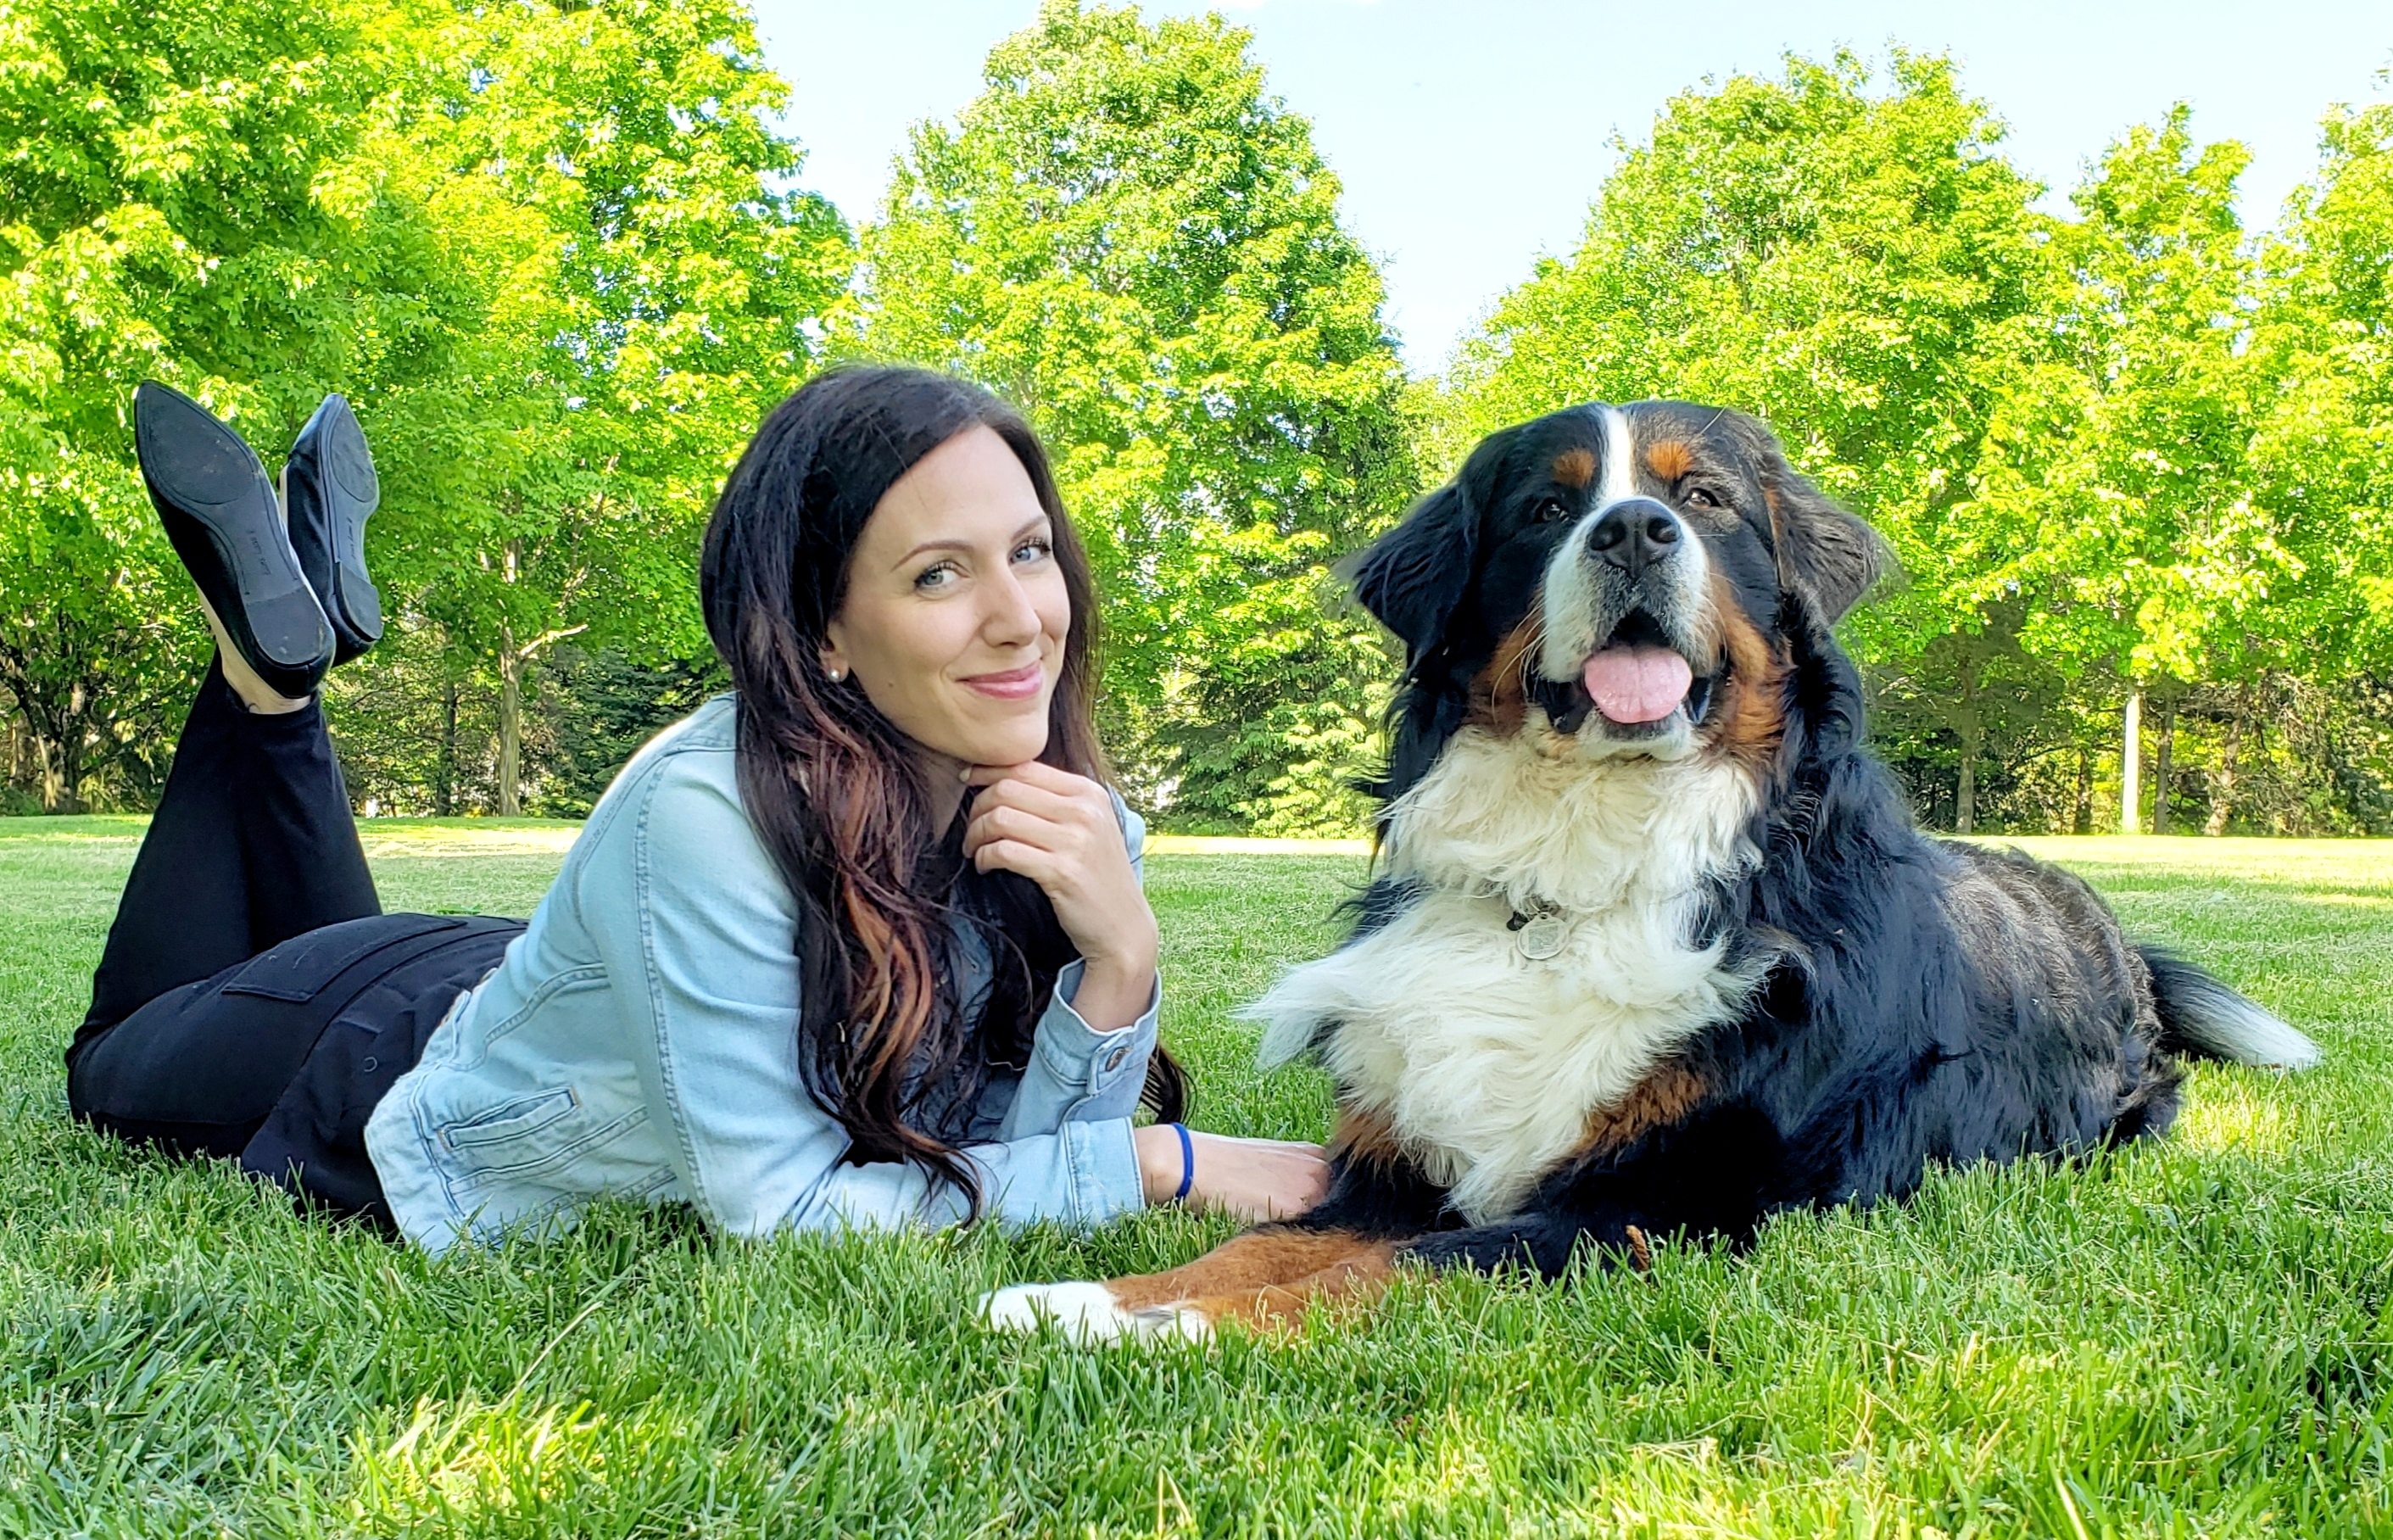 PAW PATROL. Cardona is a huge dog lover. Here, she poses with her family's Bernese mountain dog, Eiger. Photo courtesy of Krista Cardona.